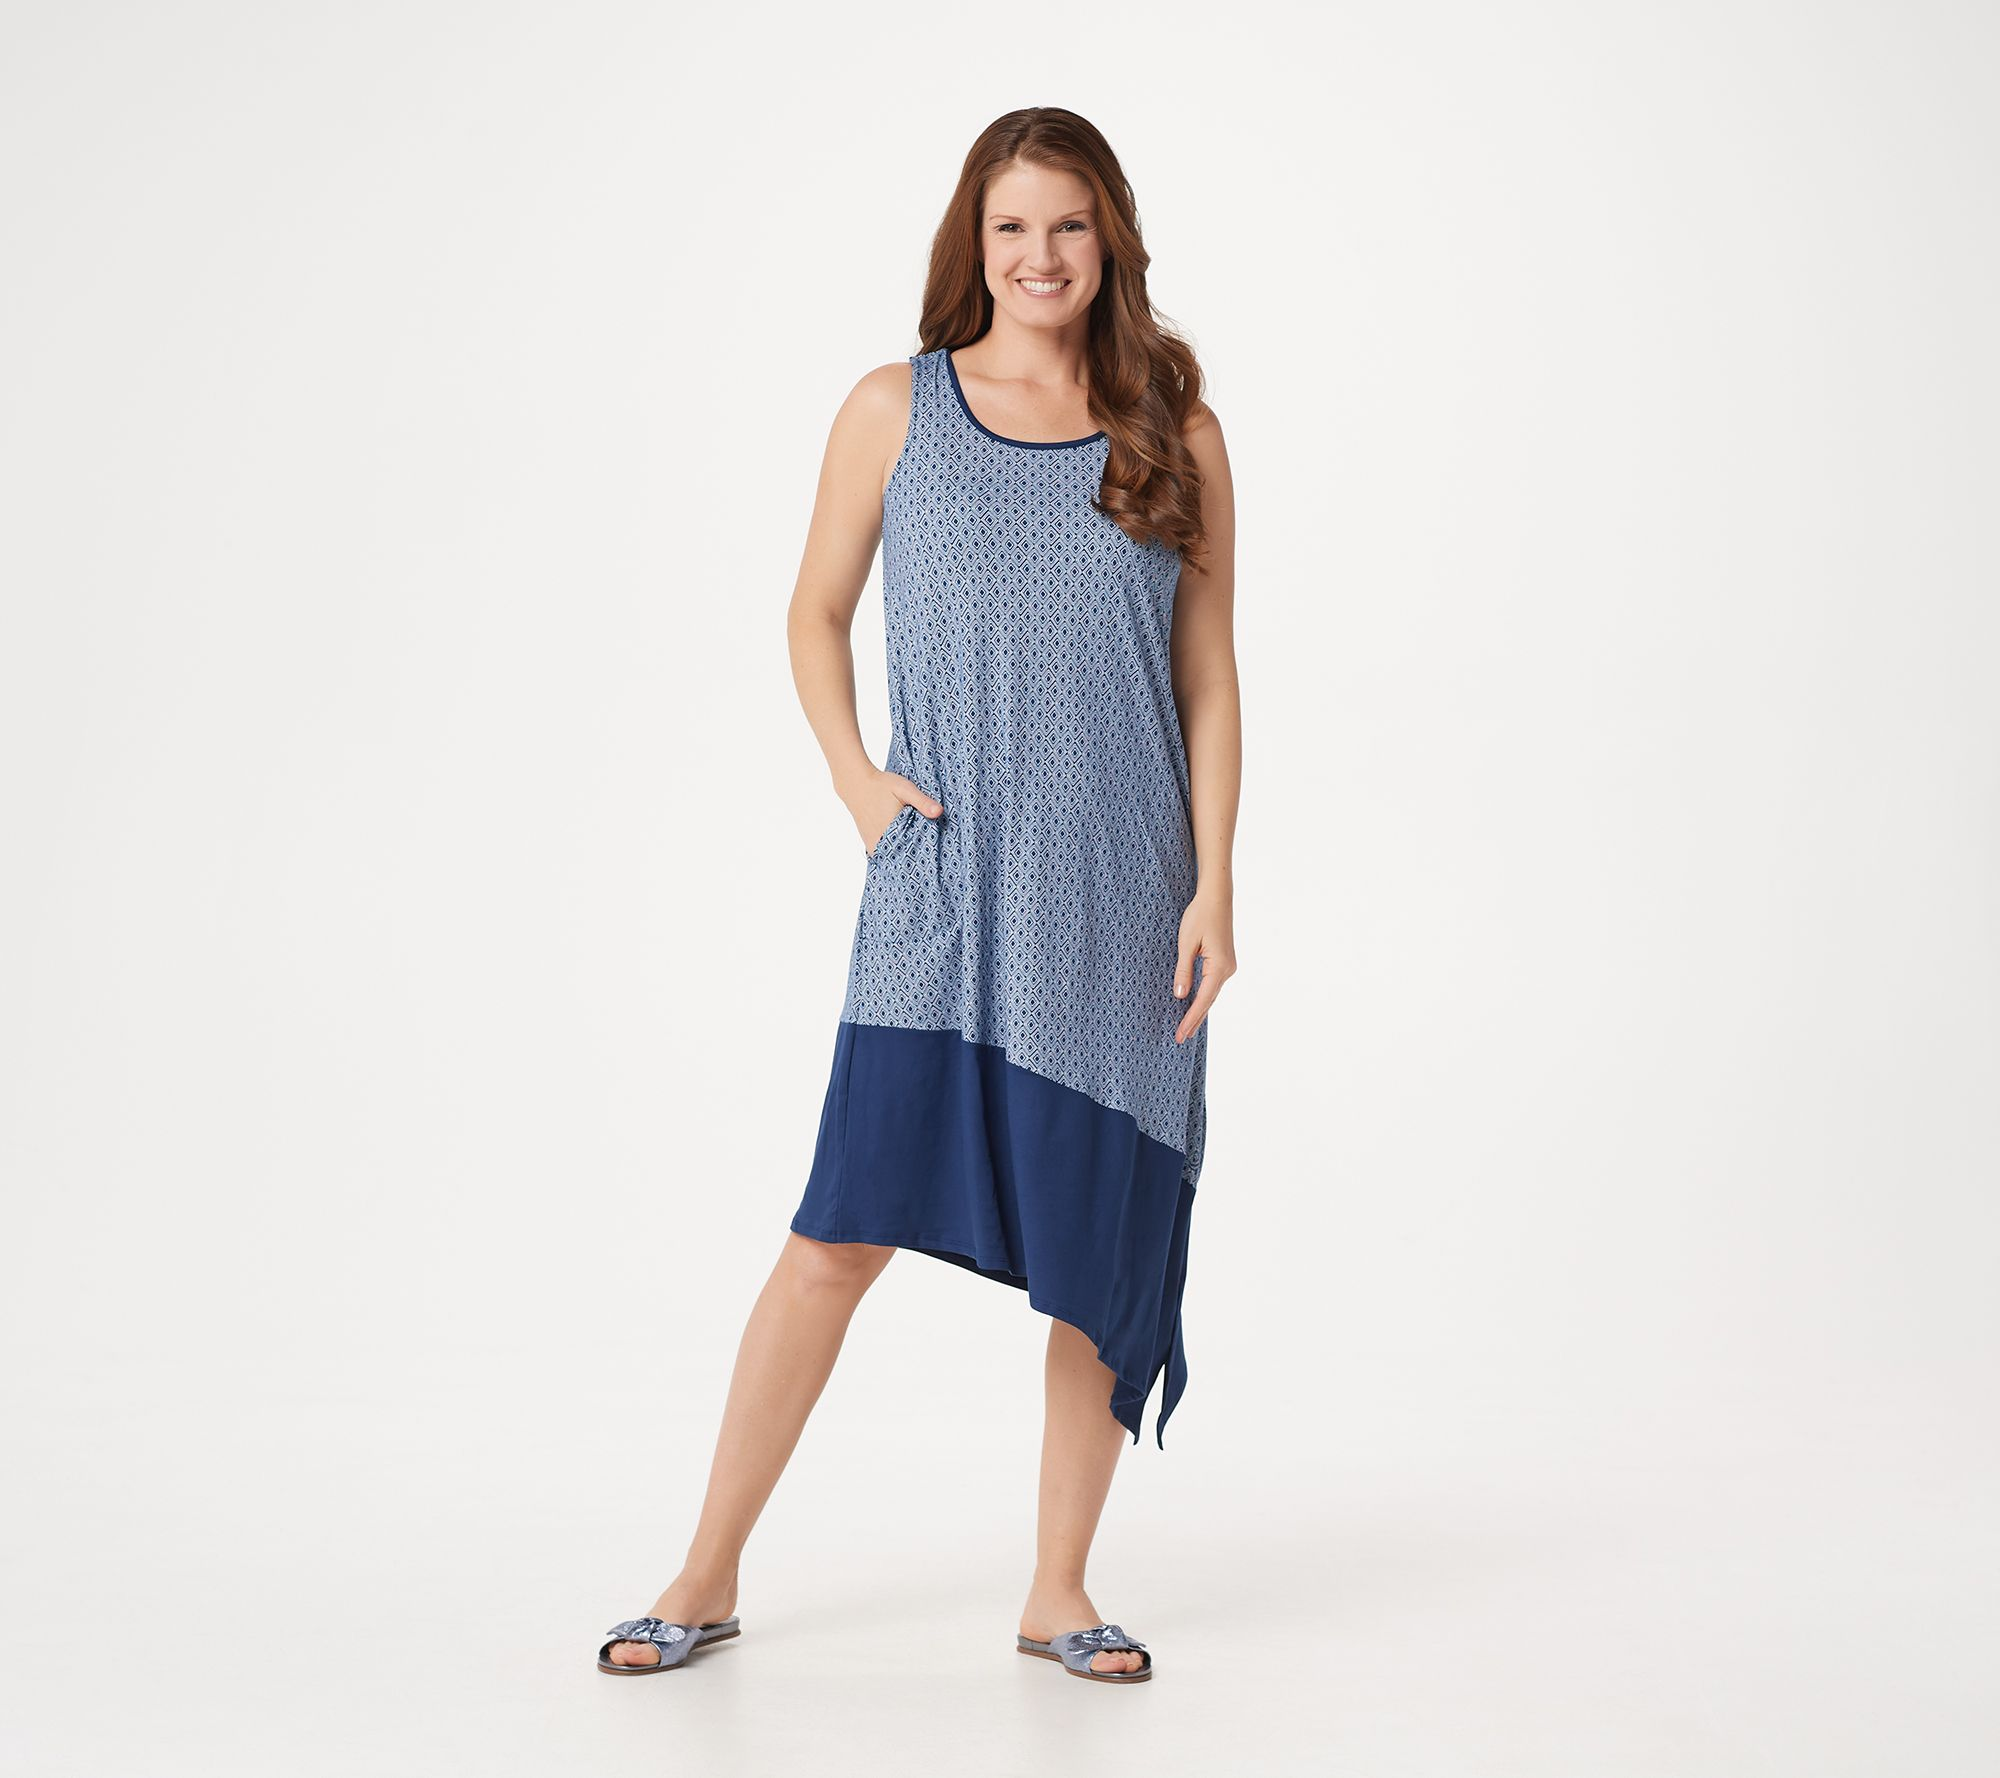 e2db933e36f99 Cuddl Duds Flexwear Asymmetric Dress with Pockets - Page 1 — QVC.com